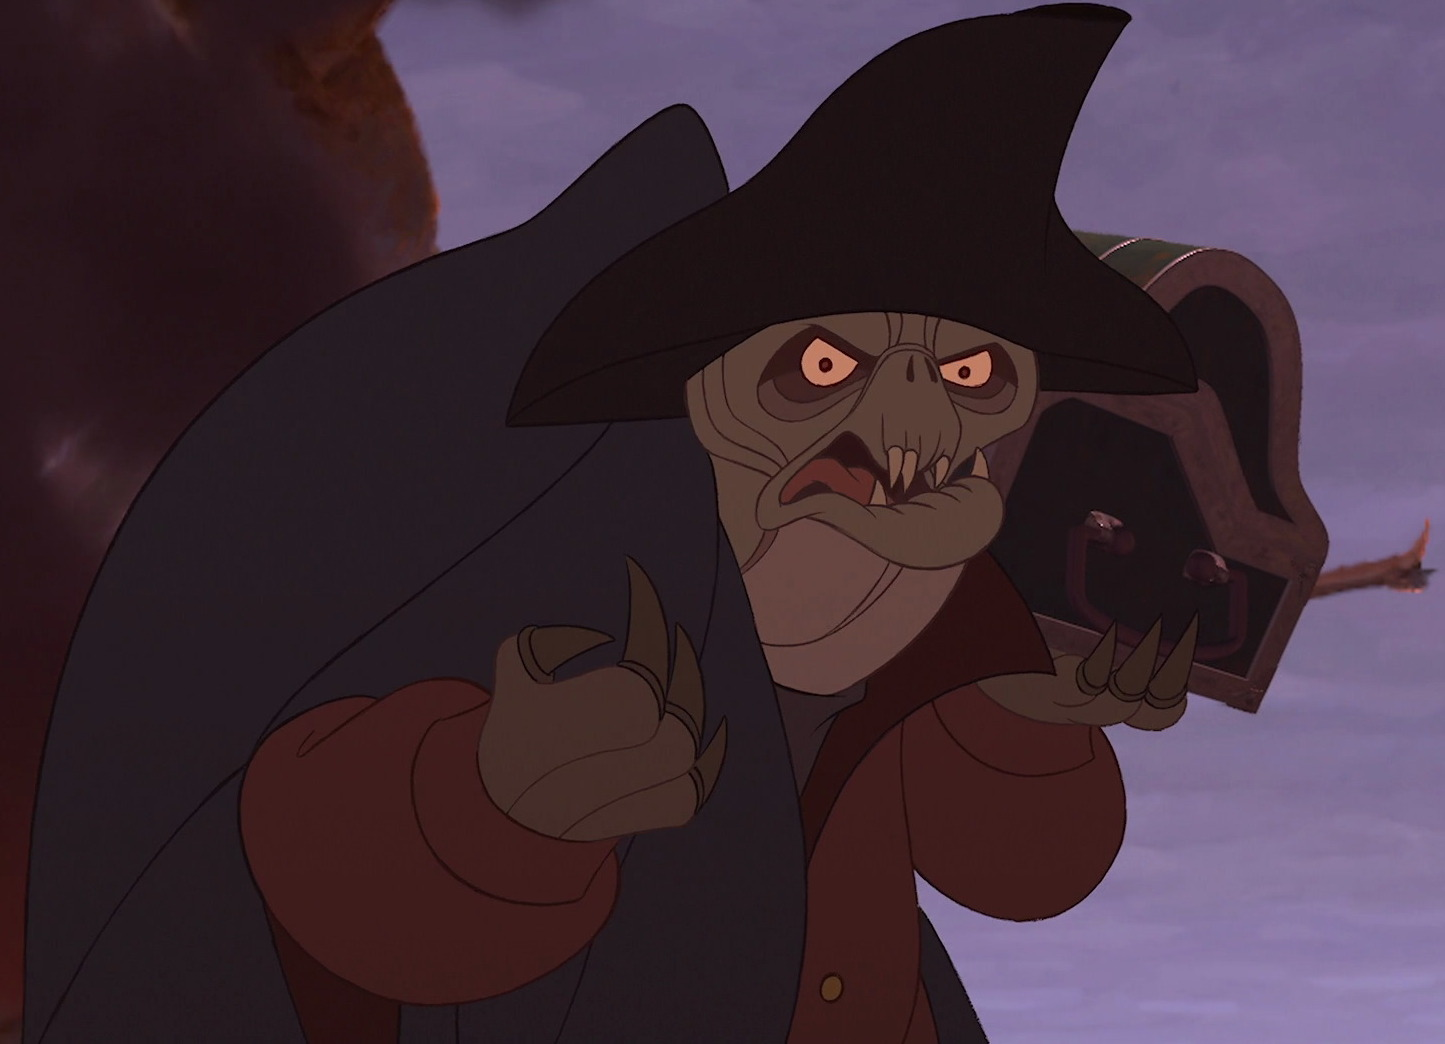 http://static.tvtropes.org/pmwiki/pub/images/Treasureplanet069.jpg